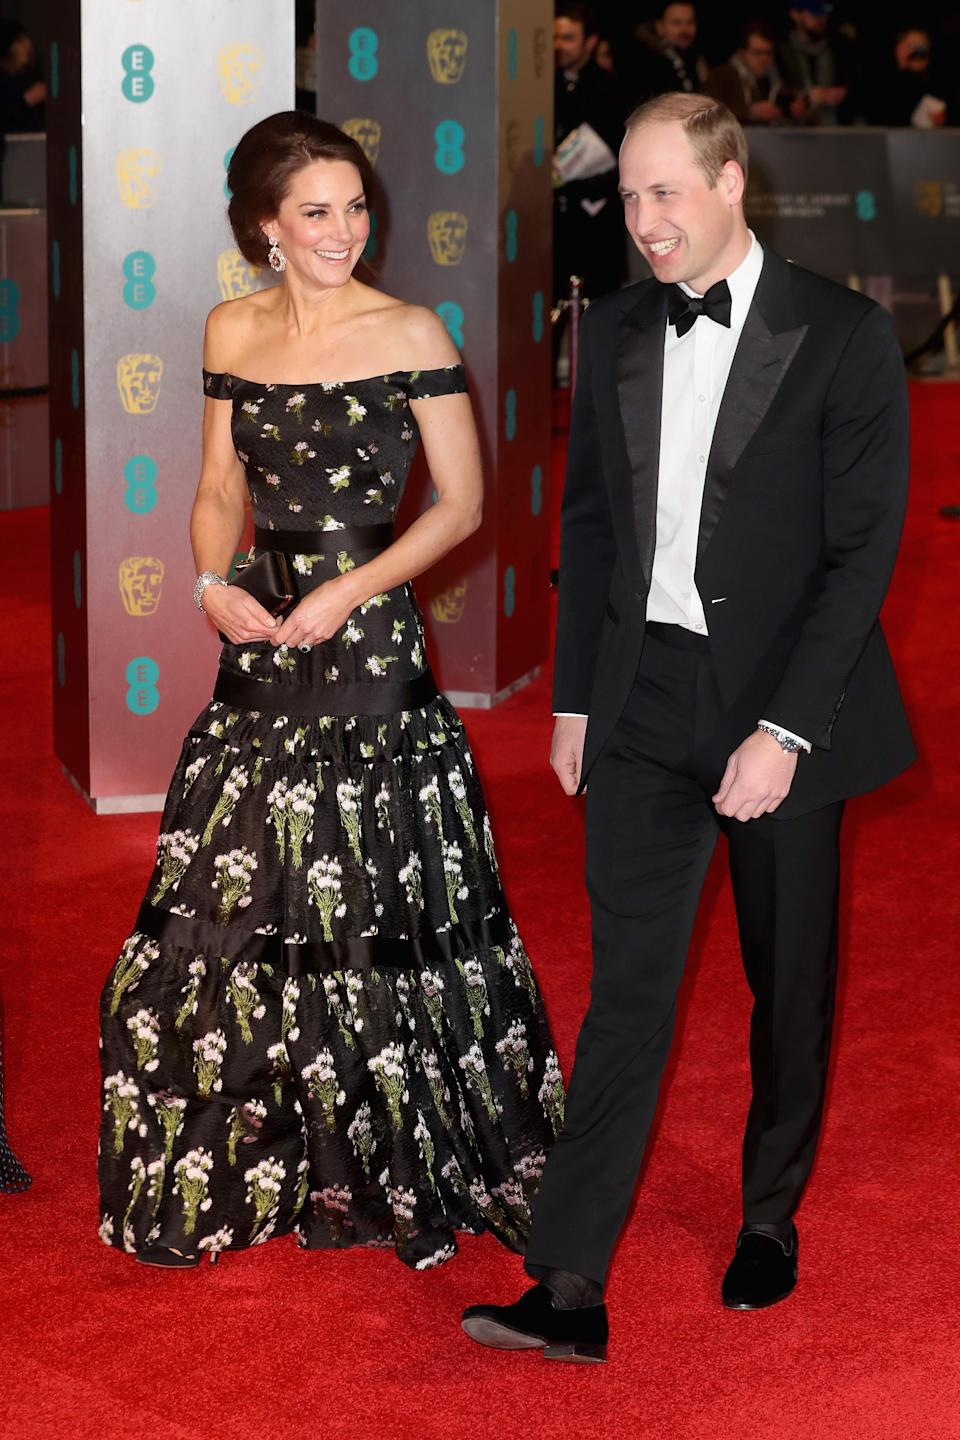 <p>Another event, another Alexander McQueen dress. For the 2017 BAFTA ceremony, the Duchess of Cambridge famously broke protocol in a cold-shoulder floral dress. The cost of the bespoke number is not known but she also accessorised with a matching £1,695 clutch by the label – further pushing the fashion budget. She finished the look with £600 Prada shoes and one of the Queen's bracelets which dates back to 1947. <em>[Photo: Getty]</em> </p>